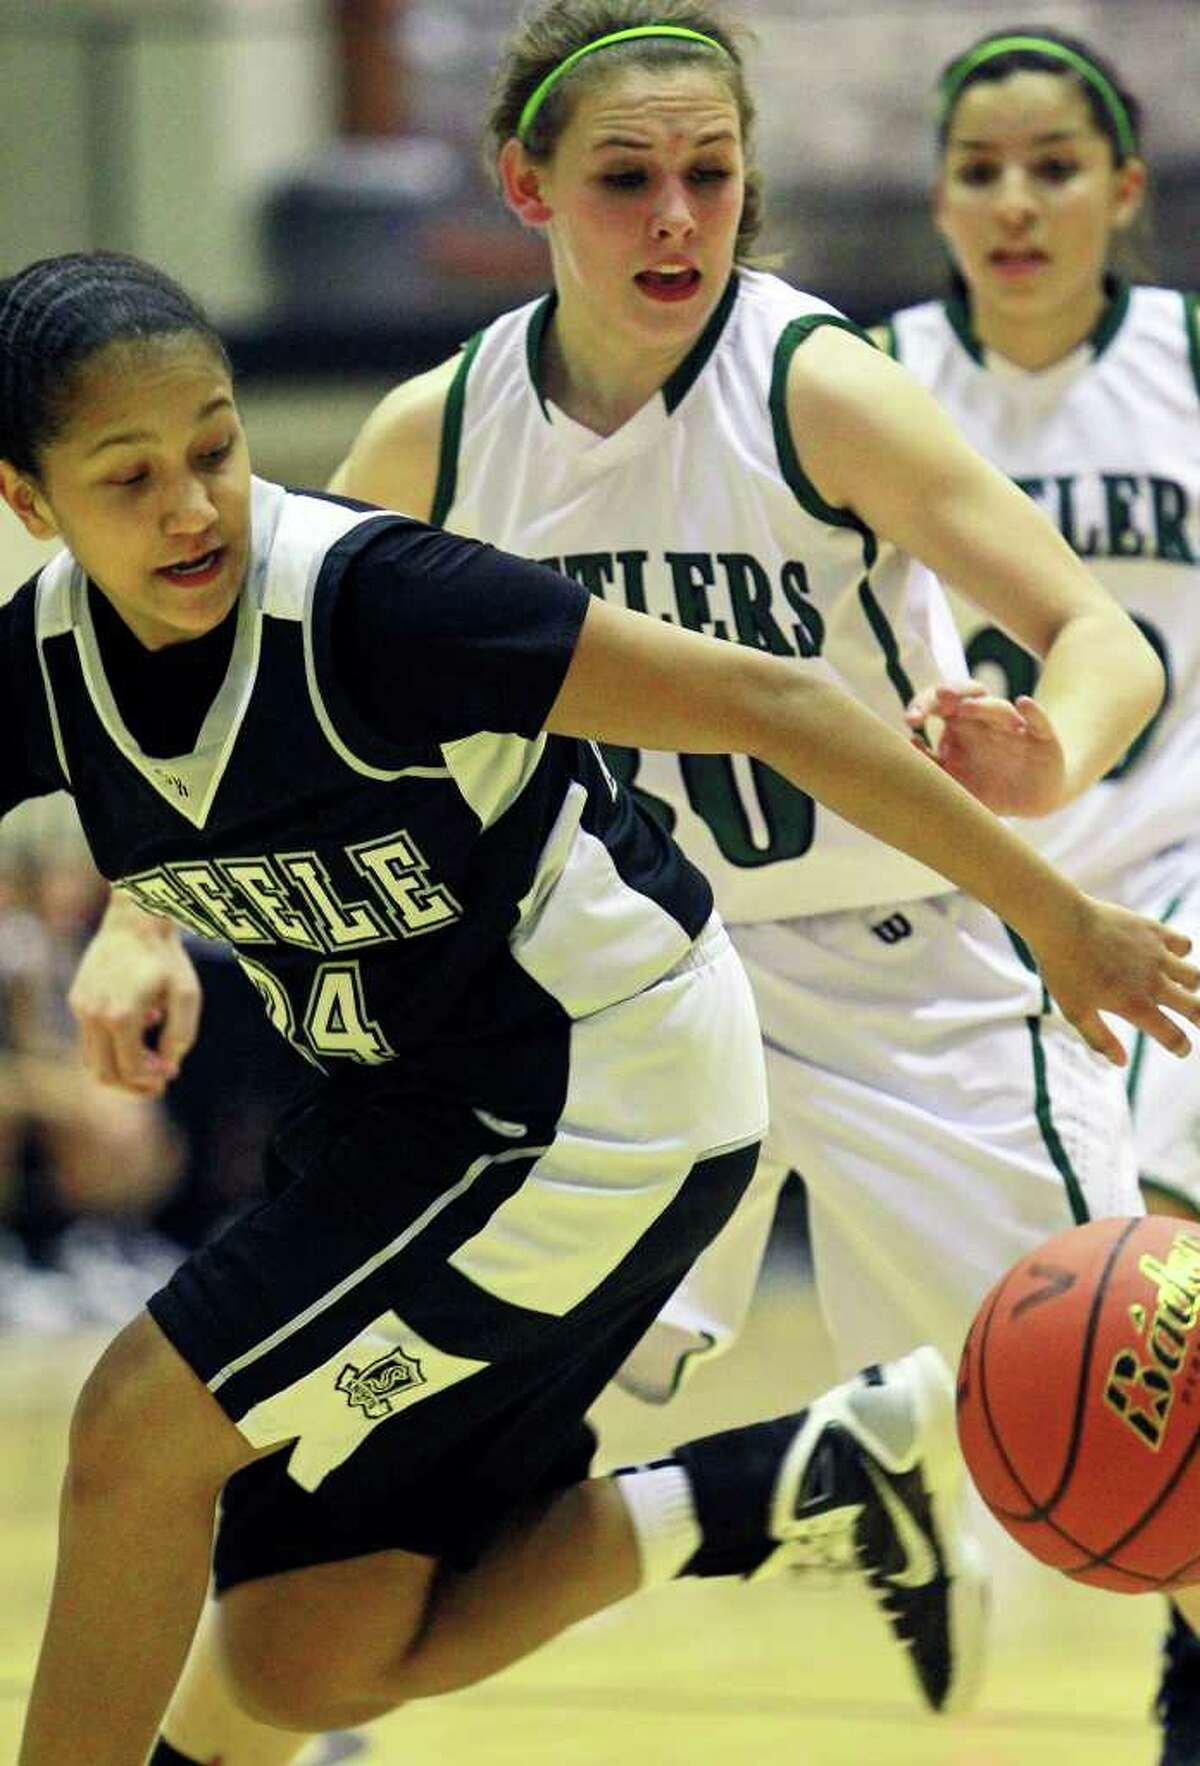 SPORTS Steele's Elena Gumbs loses the ball on a drive with pressure applied by Reagan's Malorie Dyer as Reagan plays Steele in girls basketball at Littleton Gym on November 15, 2011. Tom Reel/Staff